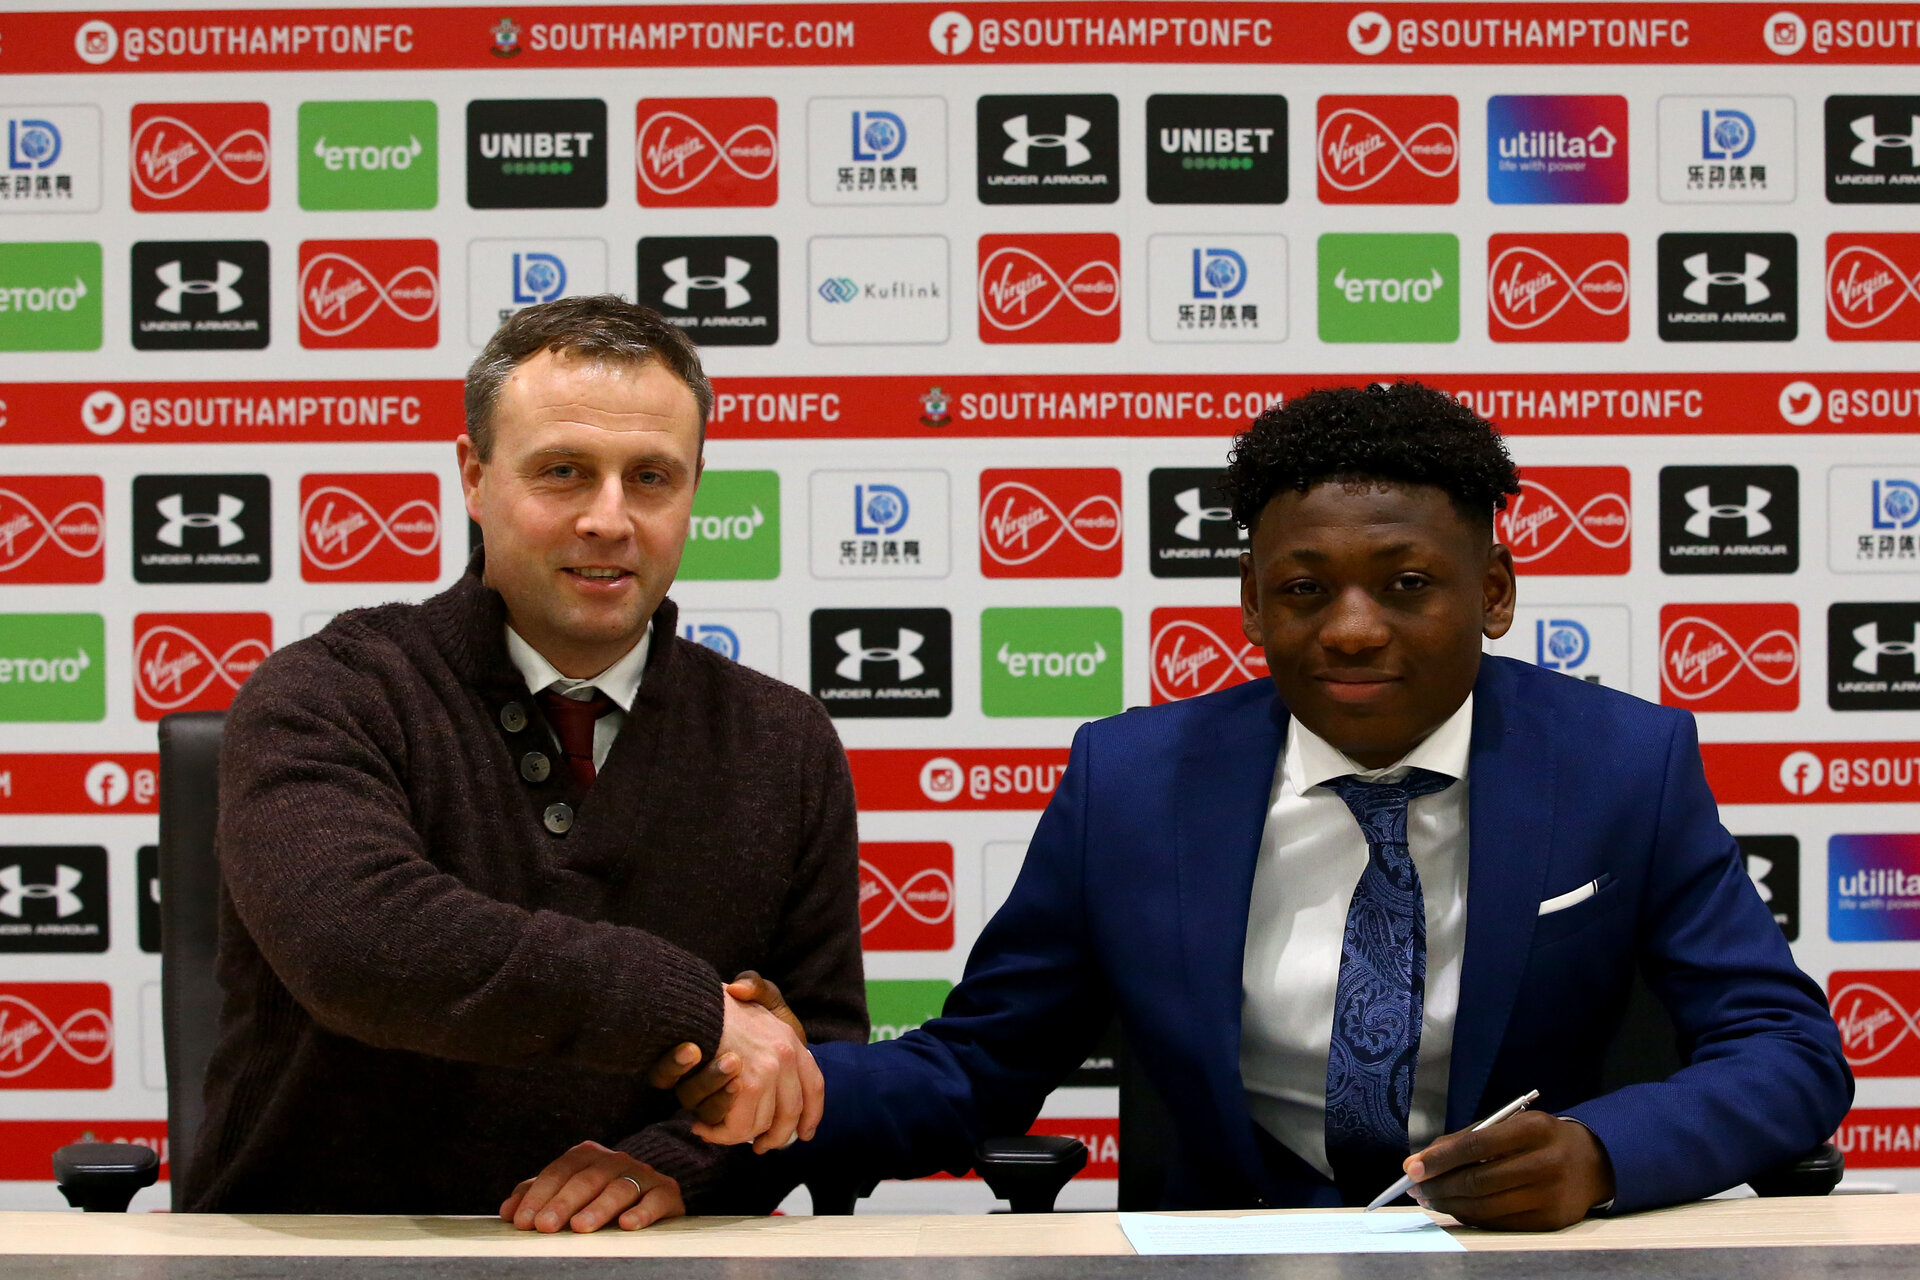 SOUTHAMPTON, ENGLAND - DECEMBER 20: Kazeem Olaigbe signing his professional contract at Southampton FC at Staplewood Training Ground on December 20, 2019 in Southampton, United Kingdom. (Photo by Isabelle FieldSouthampton FC/Southampton FC via Getty Images)